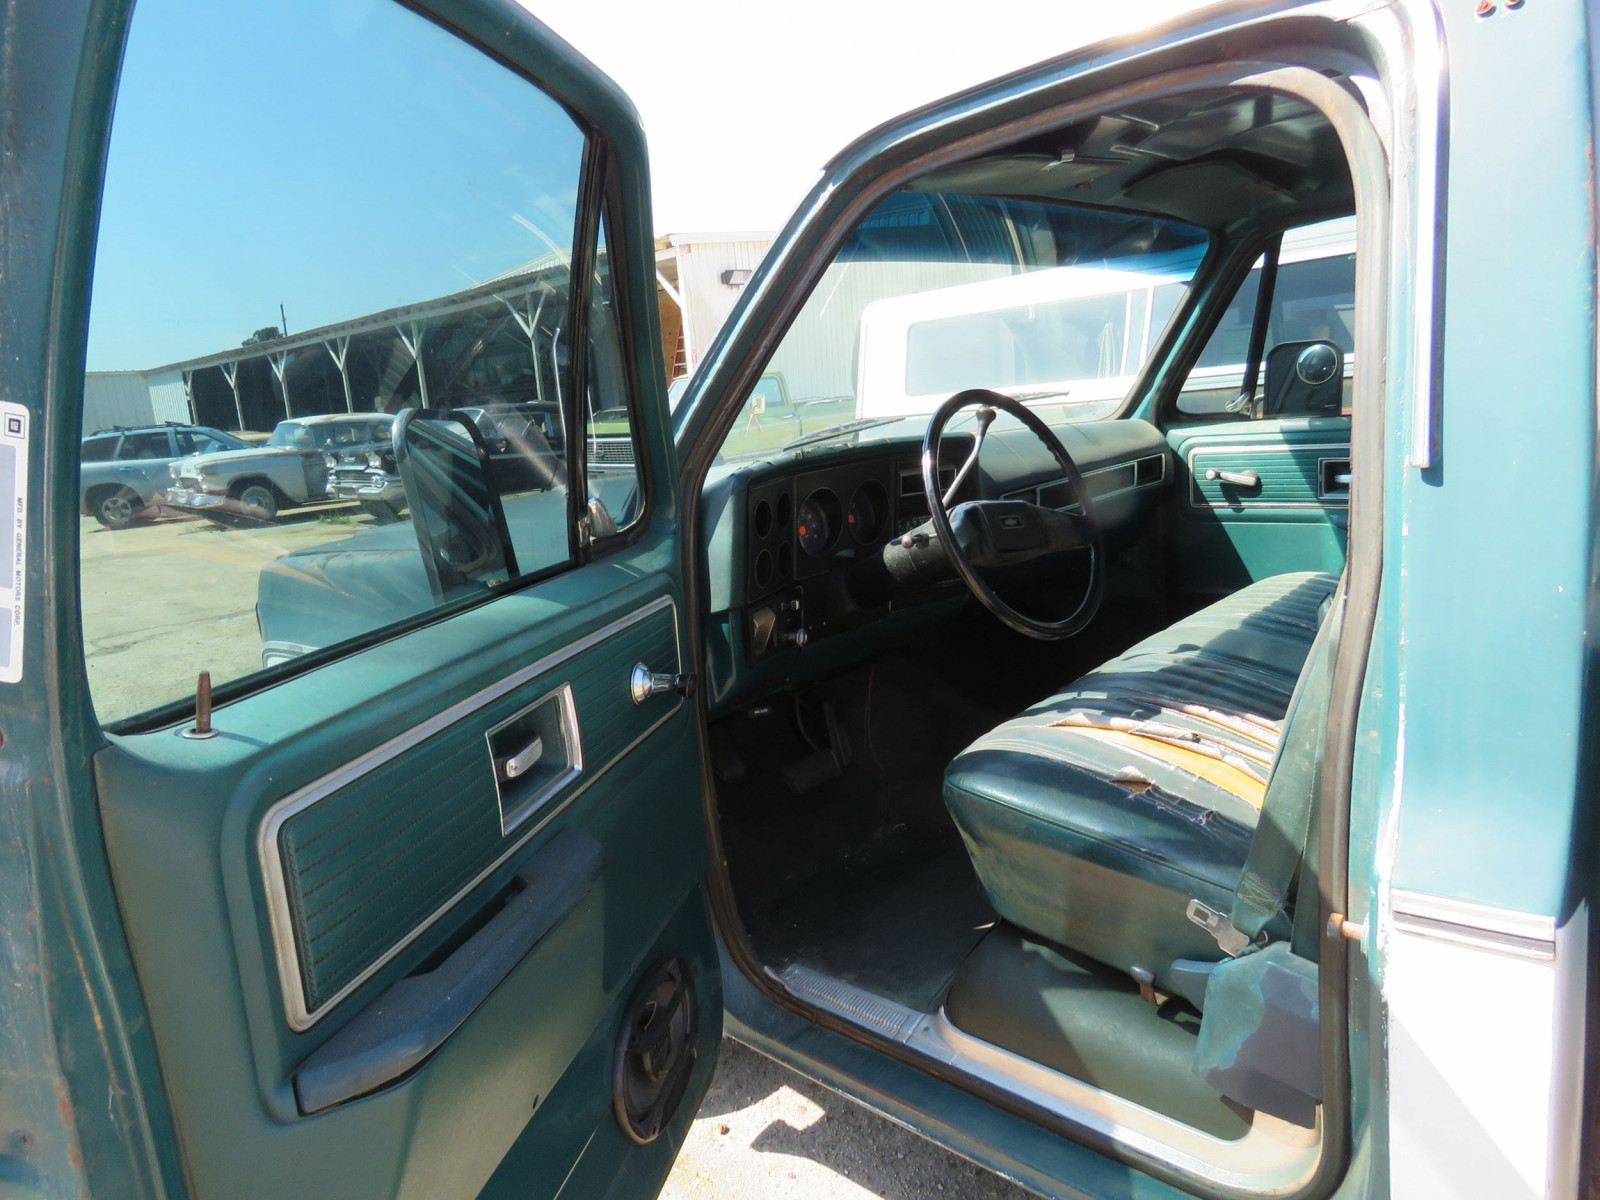 1979 Chevrolet Big 10 1/2 ton Pickup - Image 9